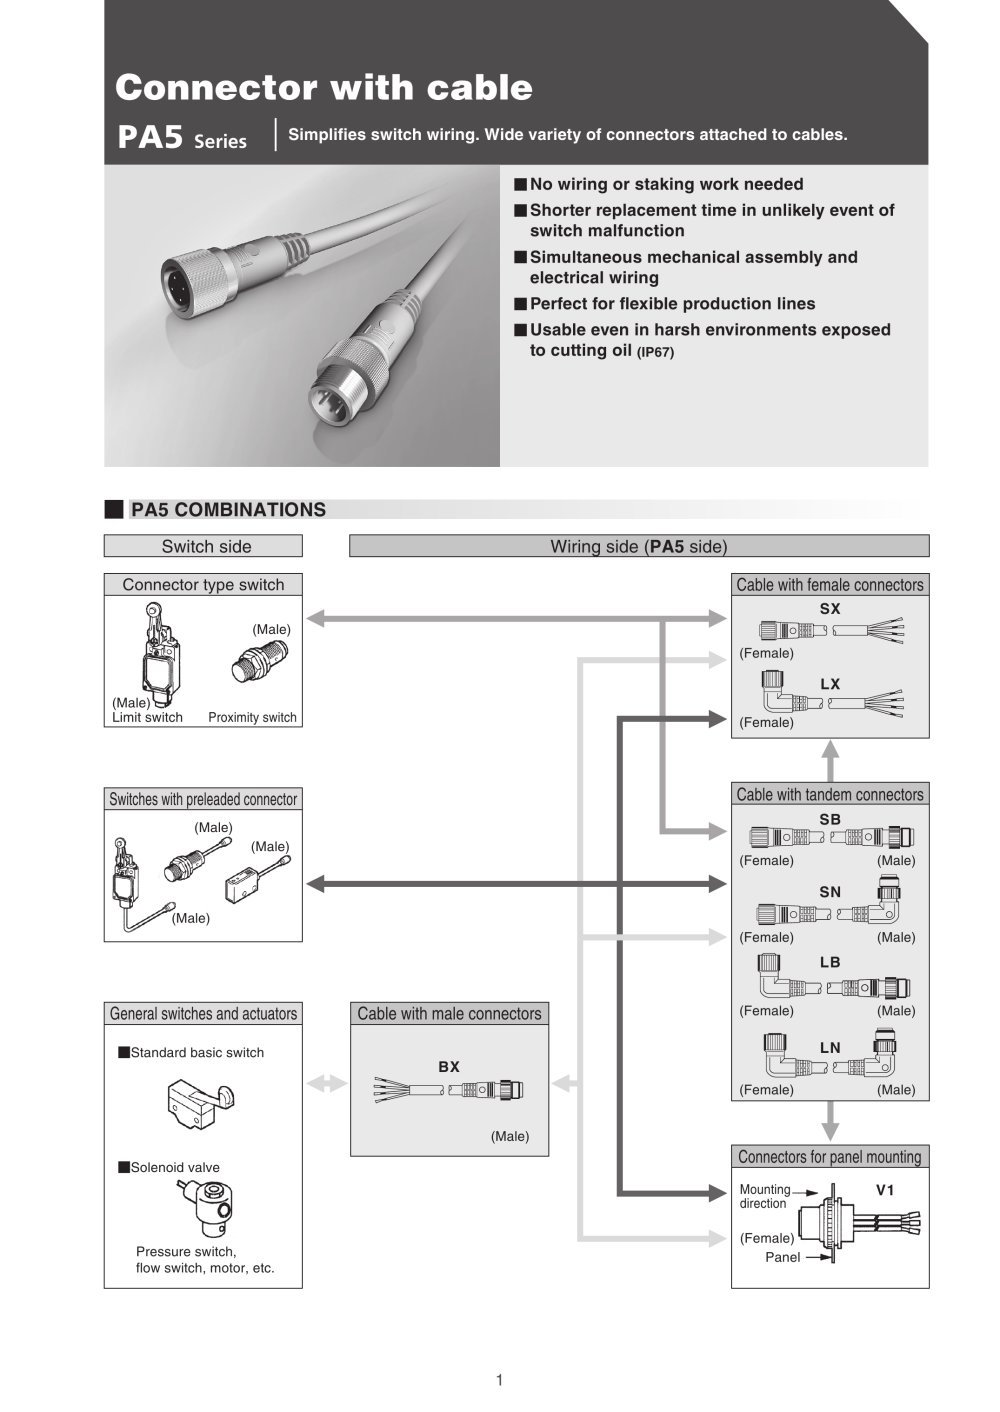 hight resolution of pa5 series m12 connector cable azbil north america pdf catalogue l3 wiring diagram m12 switch wiring diagram